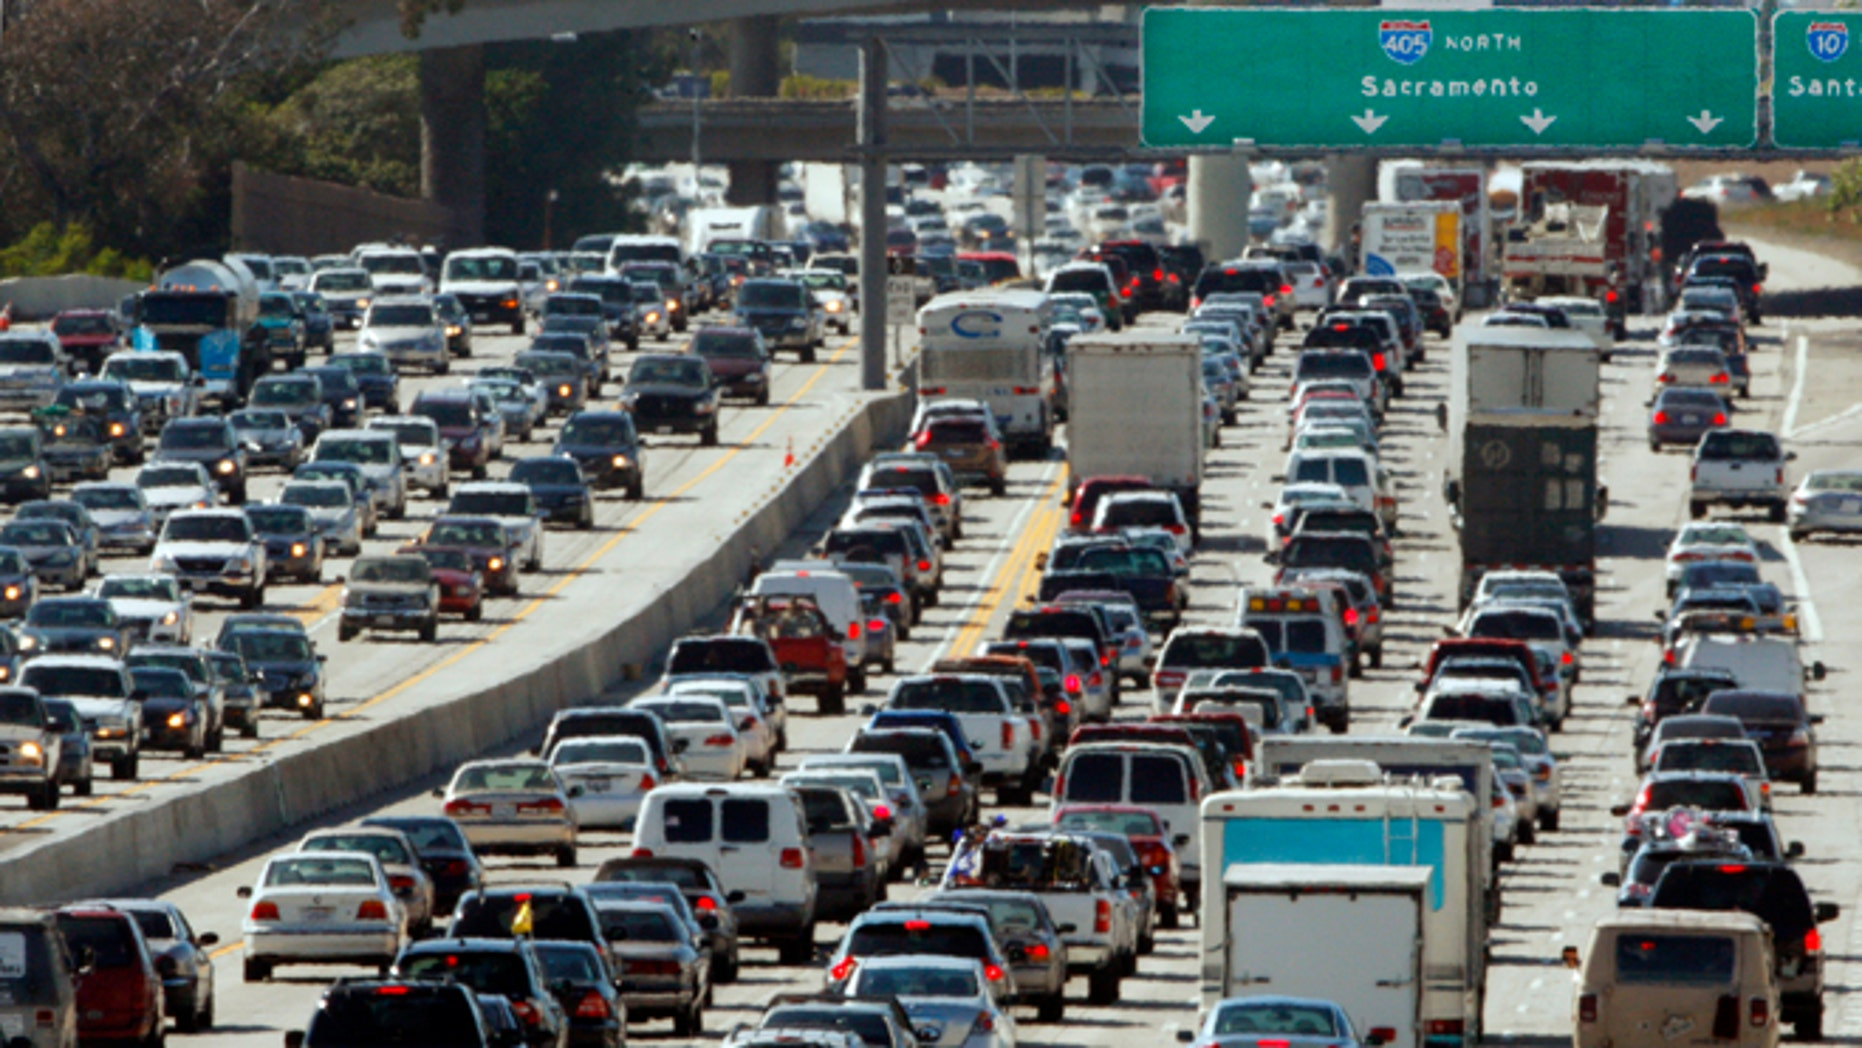 Expect bumper to bumper traffic in some parts of the country this Labor Day weekend.